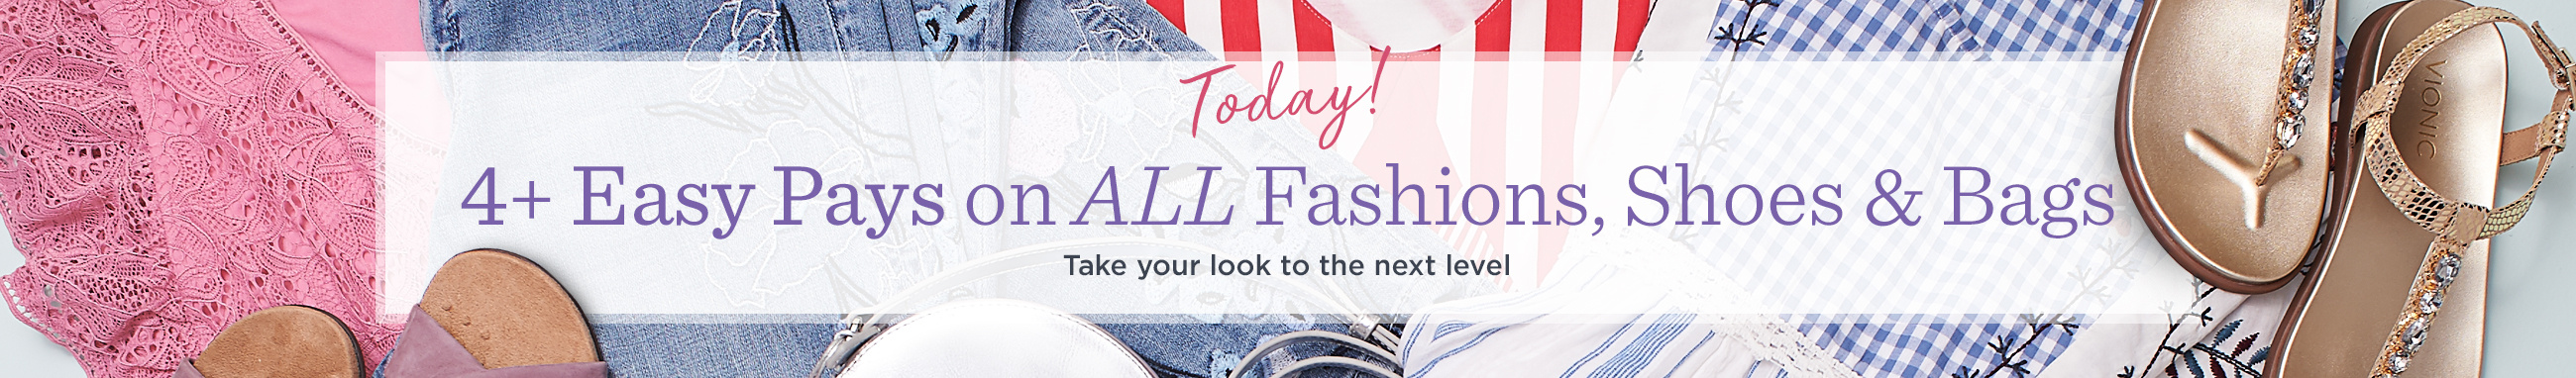 4+ Easy Pays on ALL Fashions, Shoes & Bags — Today! Take your look to the next level